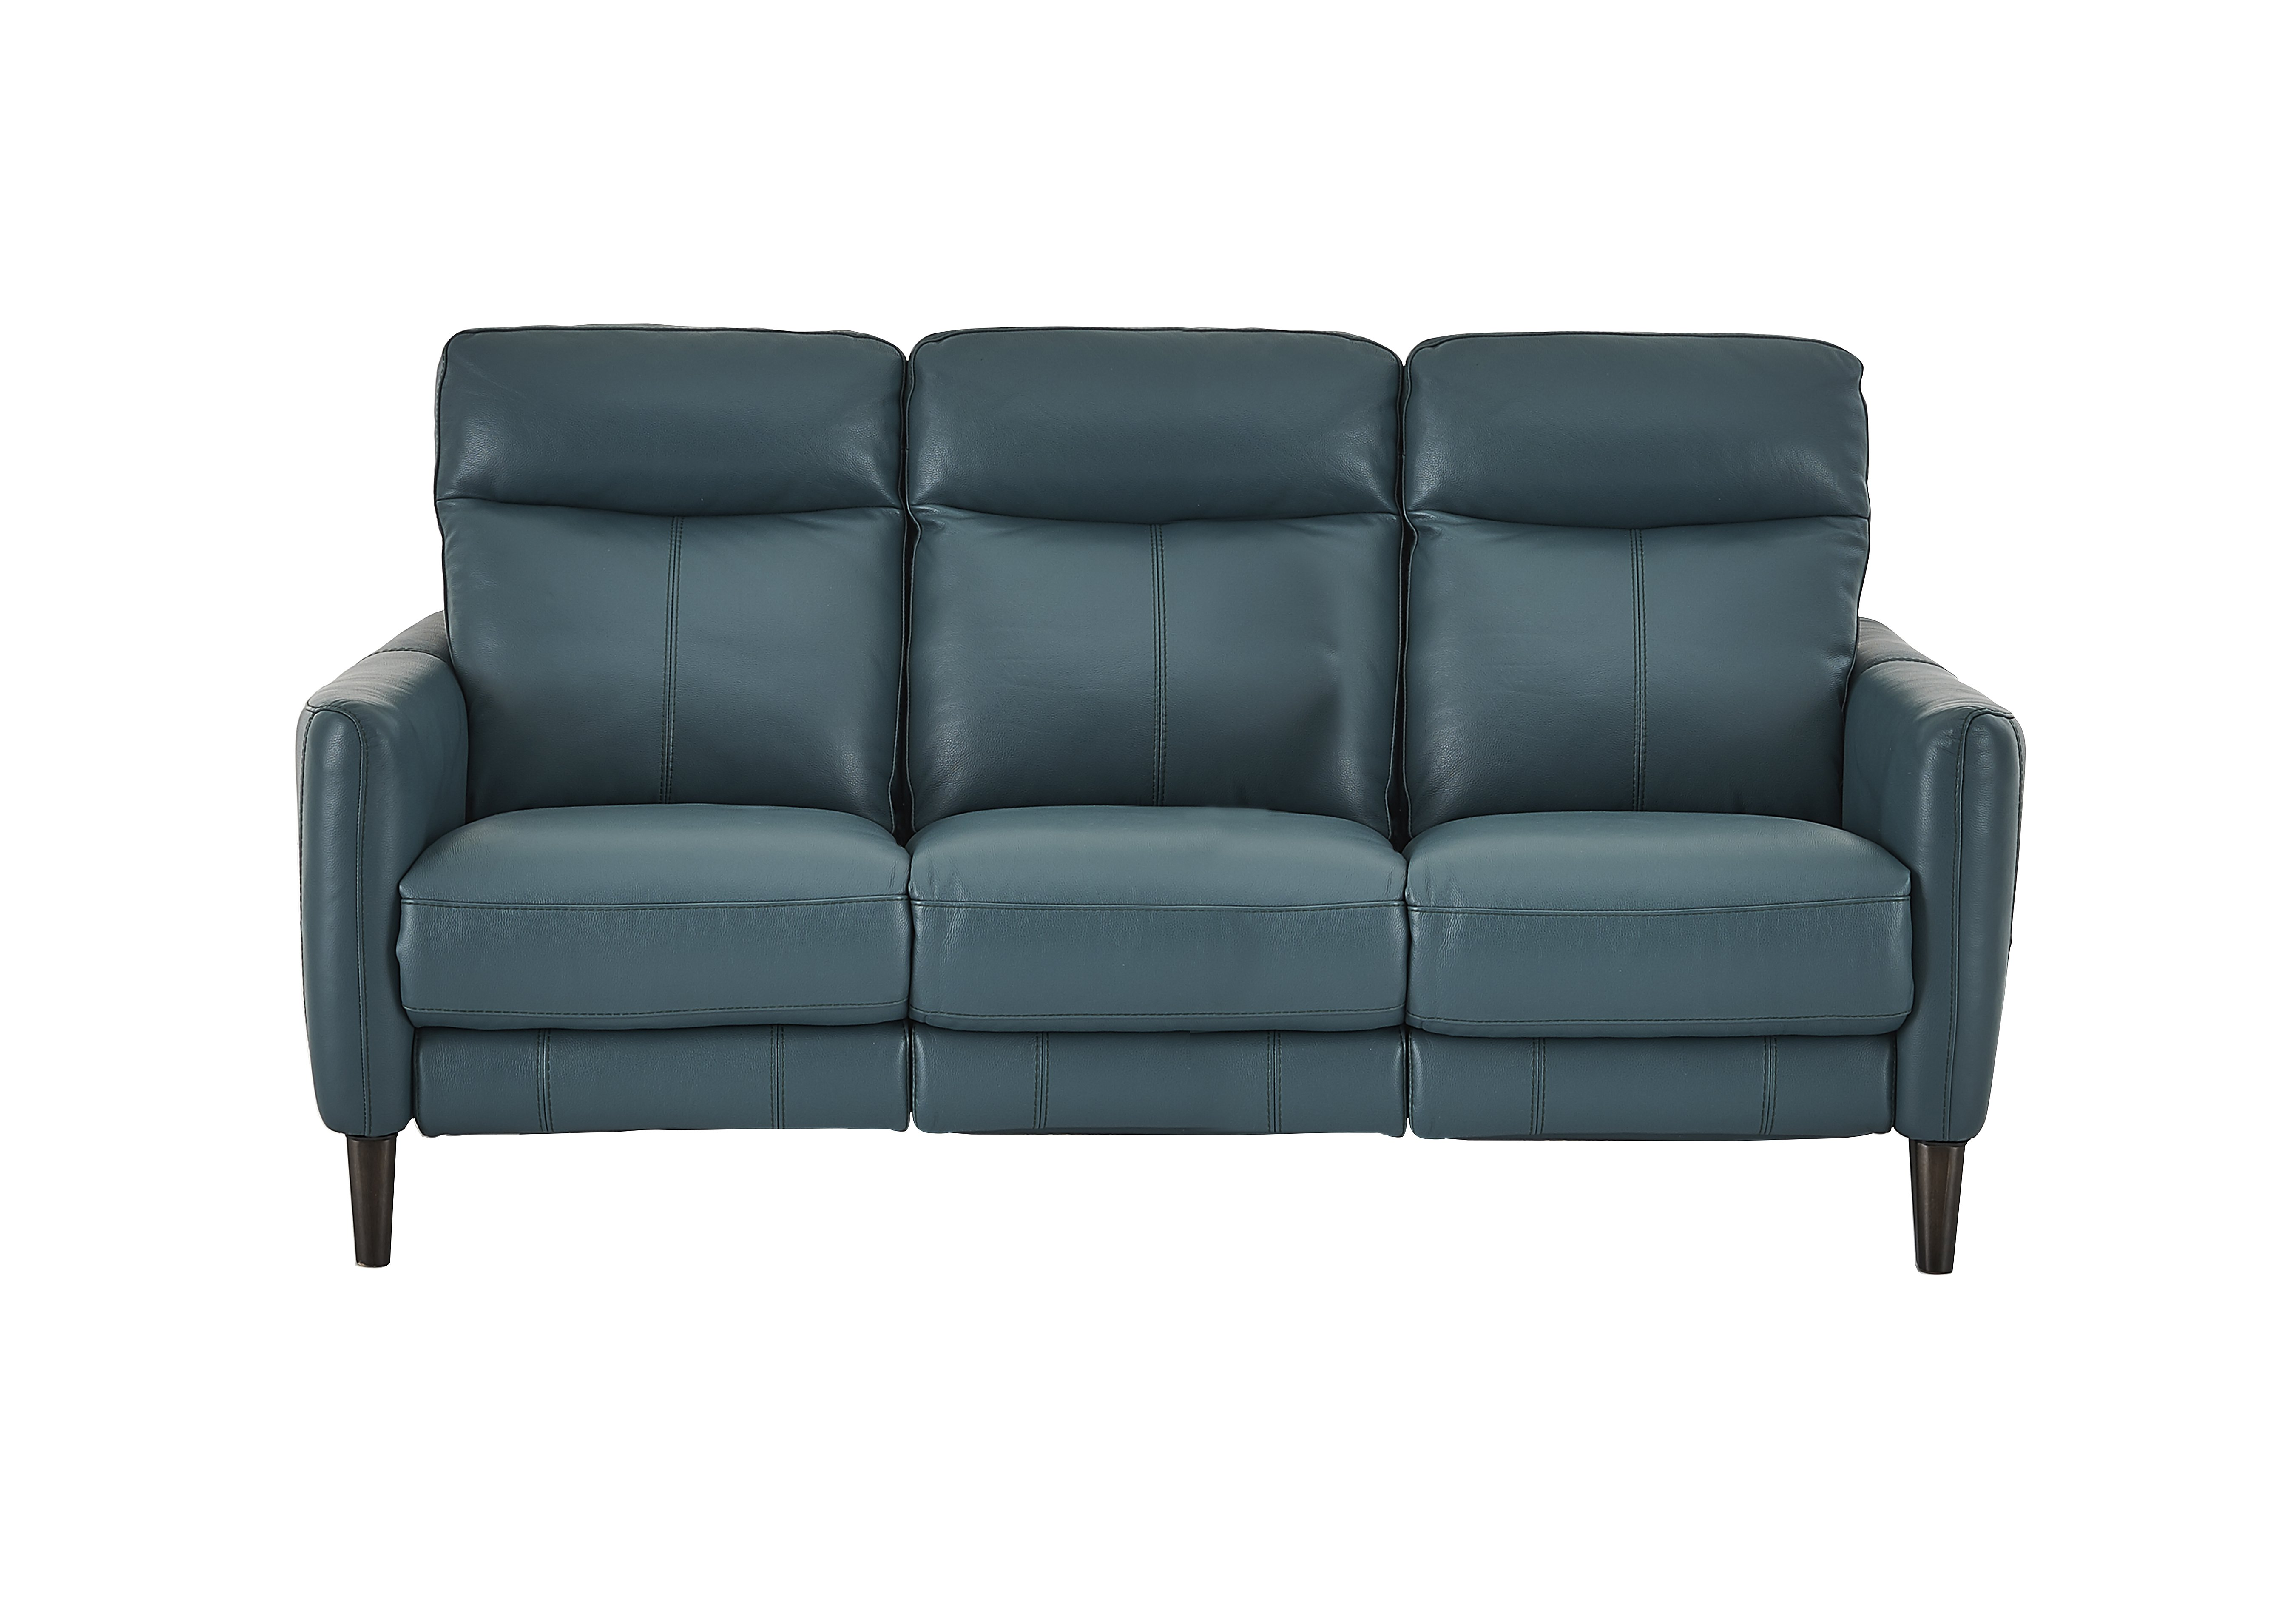 pact Collection Petit 3 Seater Leather Recliner Sofa